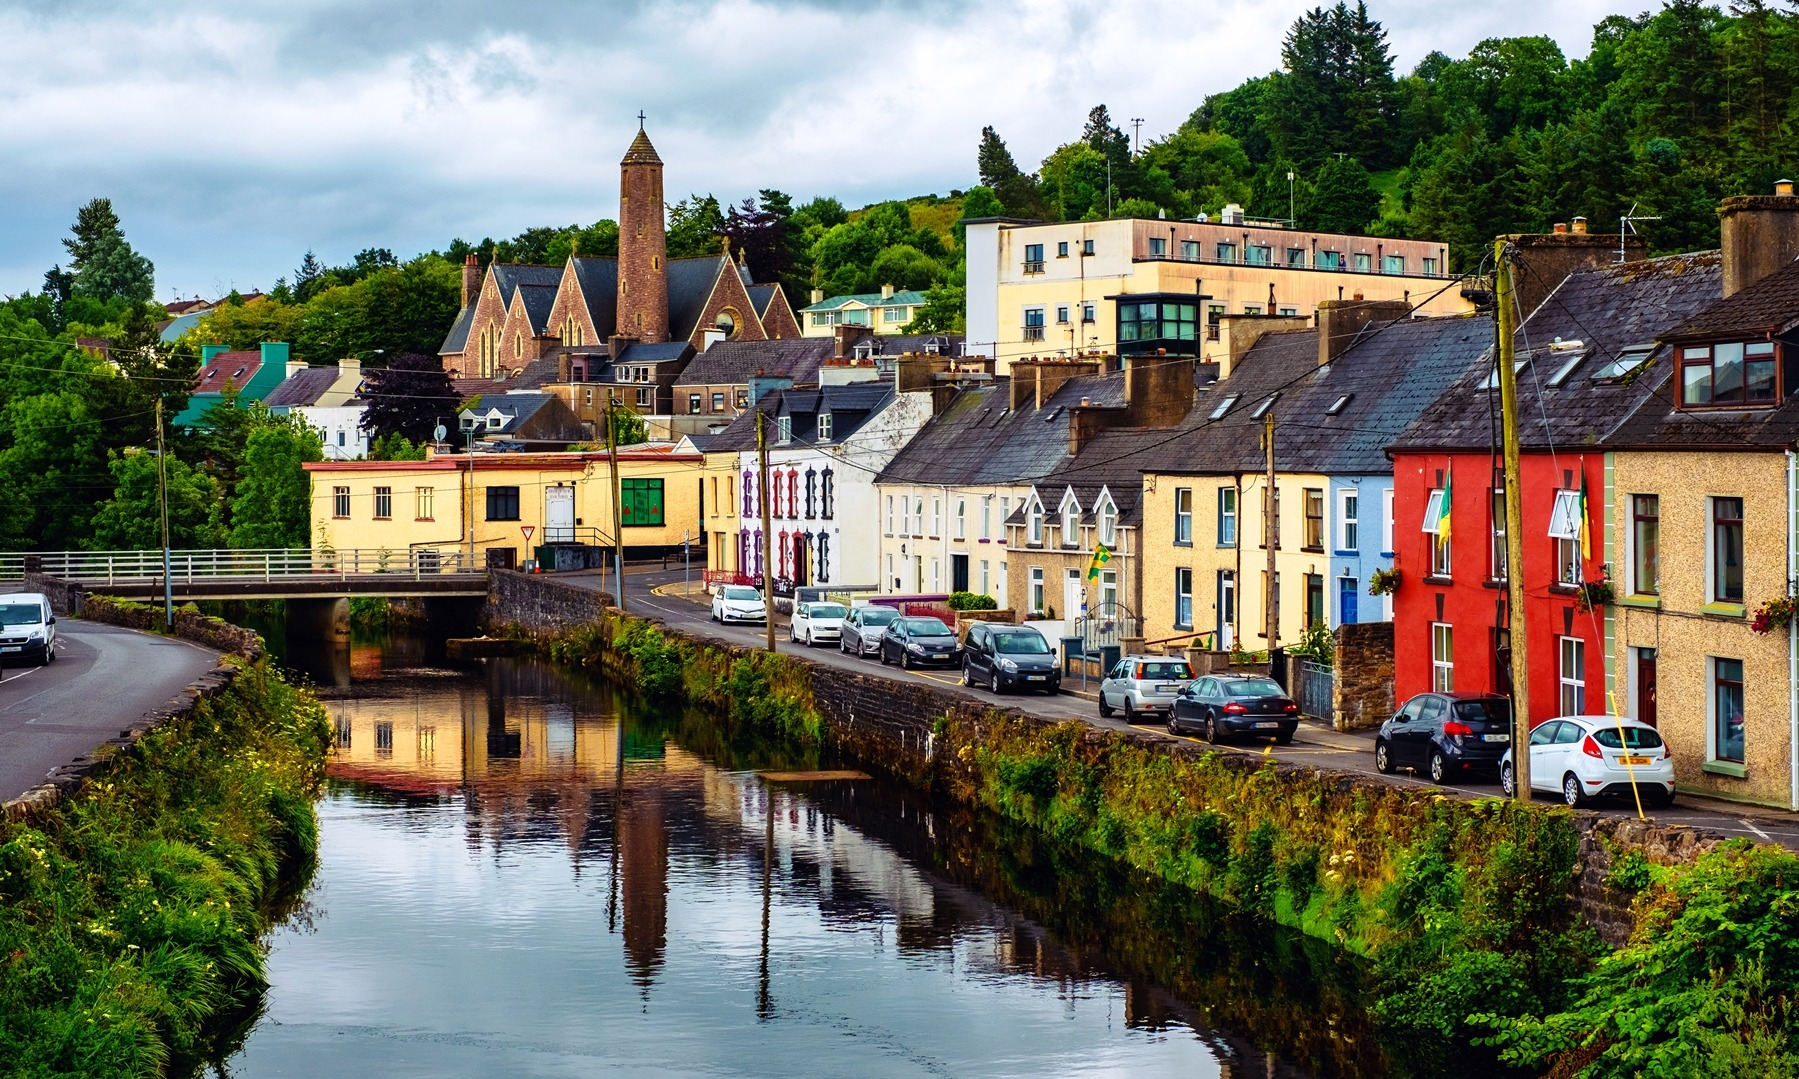 Moving to Kinsale for 6 Months - Advice? - Kinsale Forum